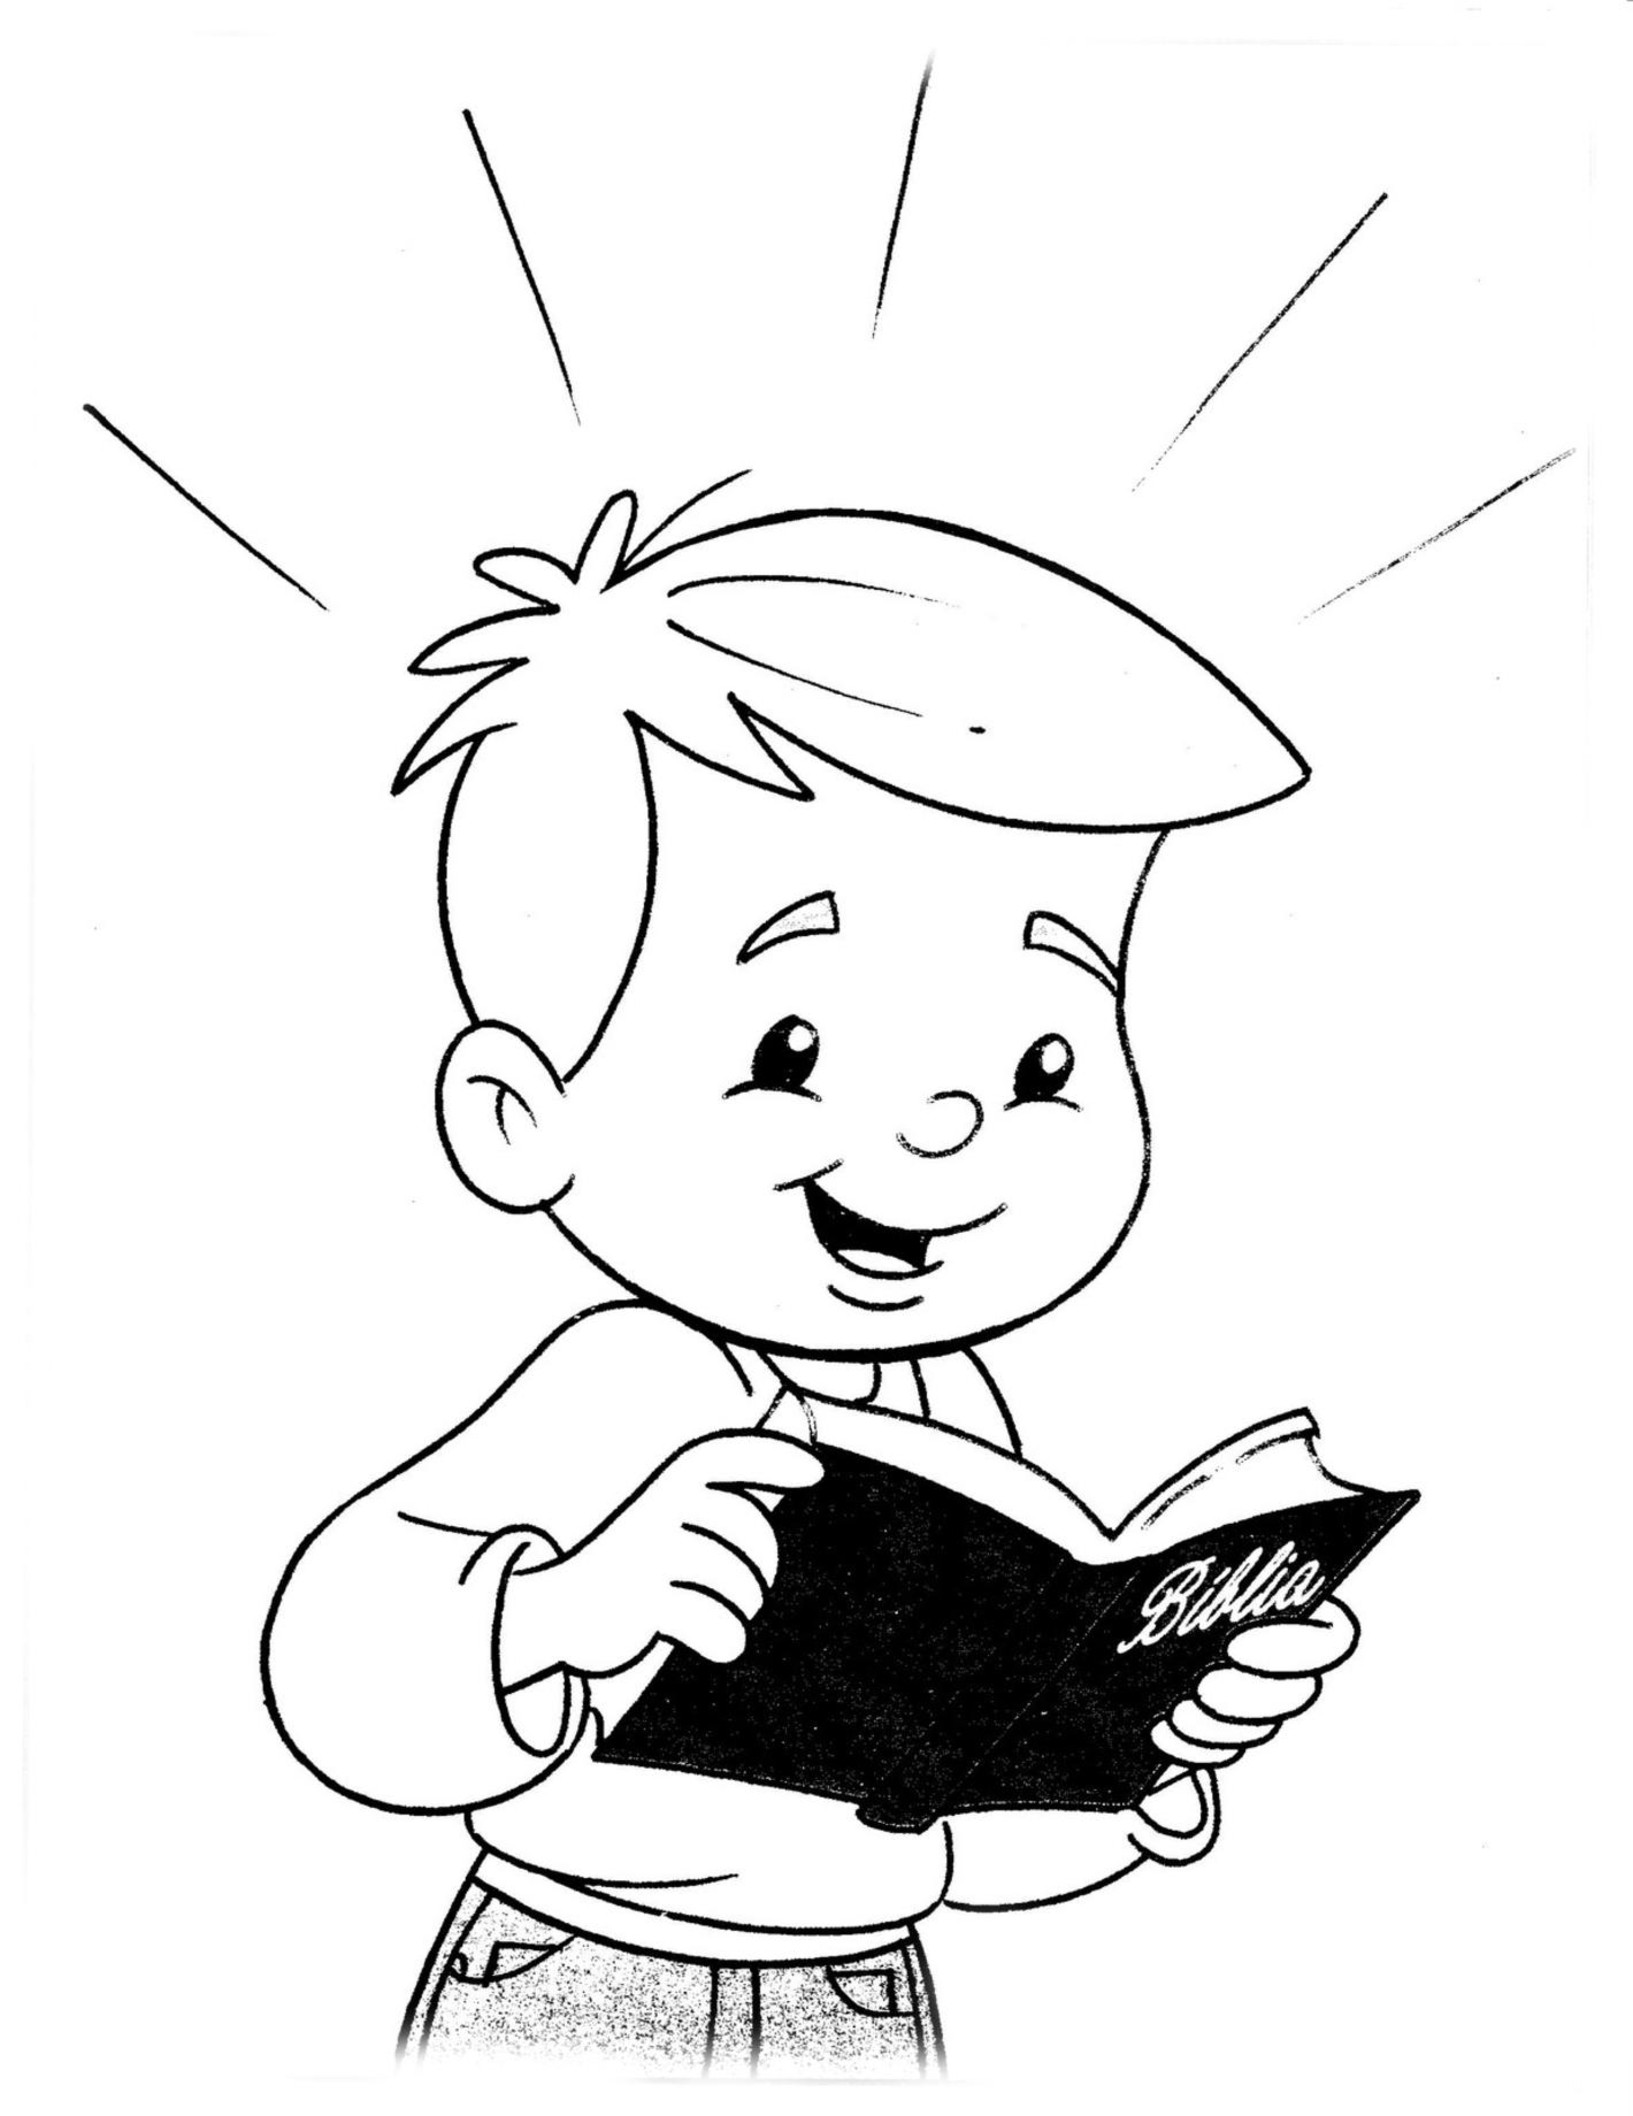 bible coloring for kids bible story coloring pages for kids coloring home bible kids coloring for